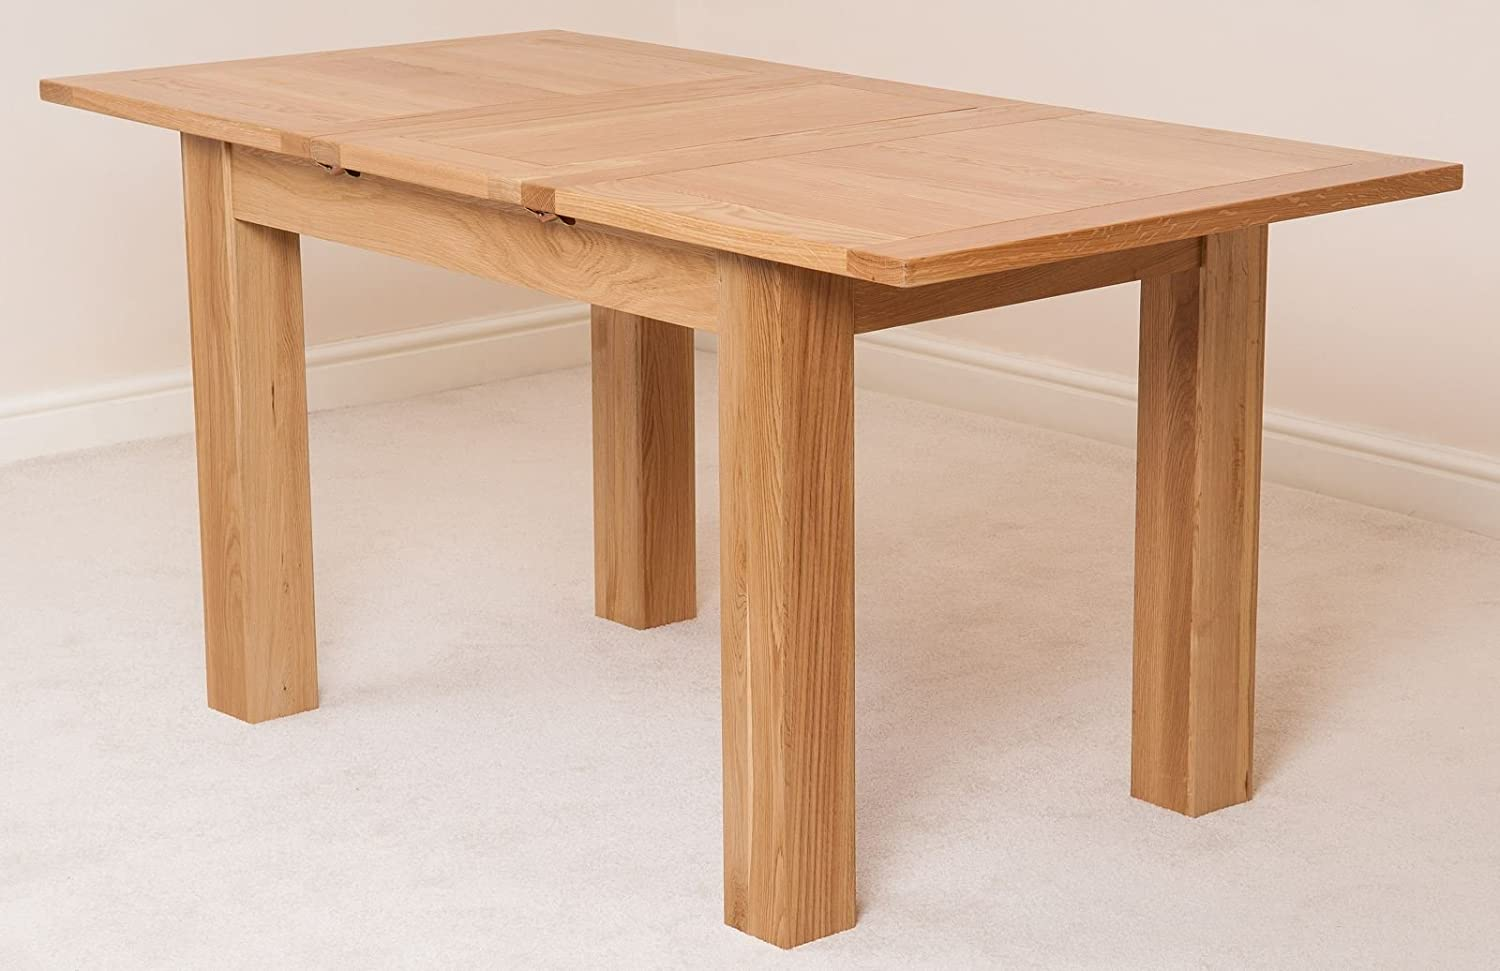 Oak Extendable Dining Table 5ft Solid Oak Kitchen Dining Table Extending From 120cm 160cm Minimal Assembly Hampton By Oak Furniture King